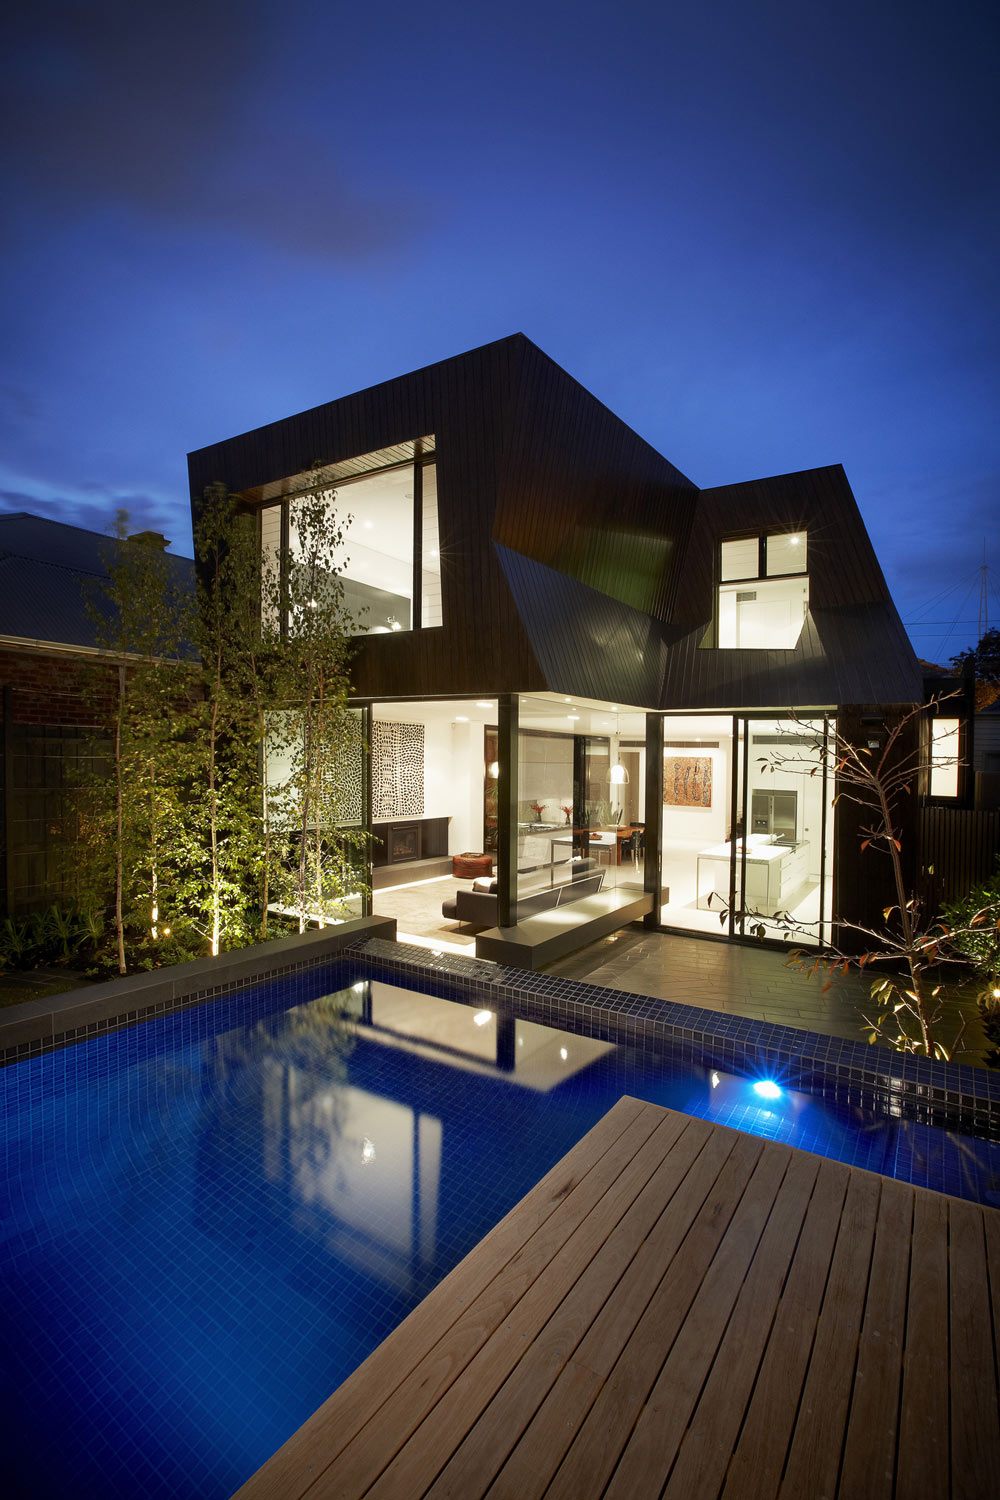 Enclave house in melbourne australia by bkk architects for Home plans with pools